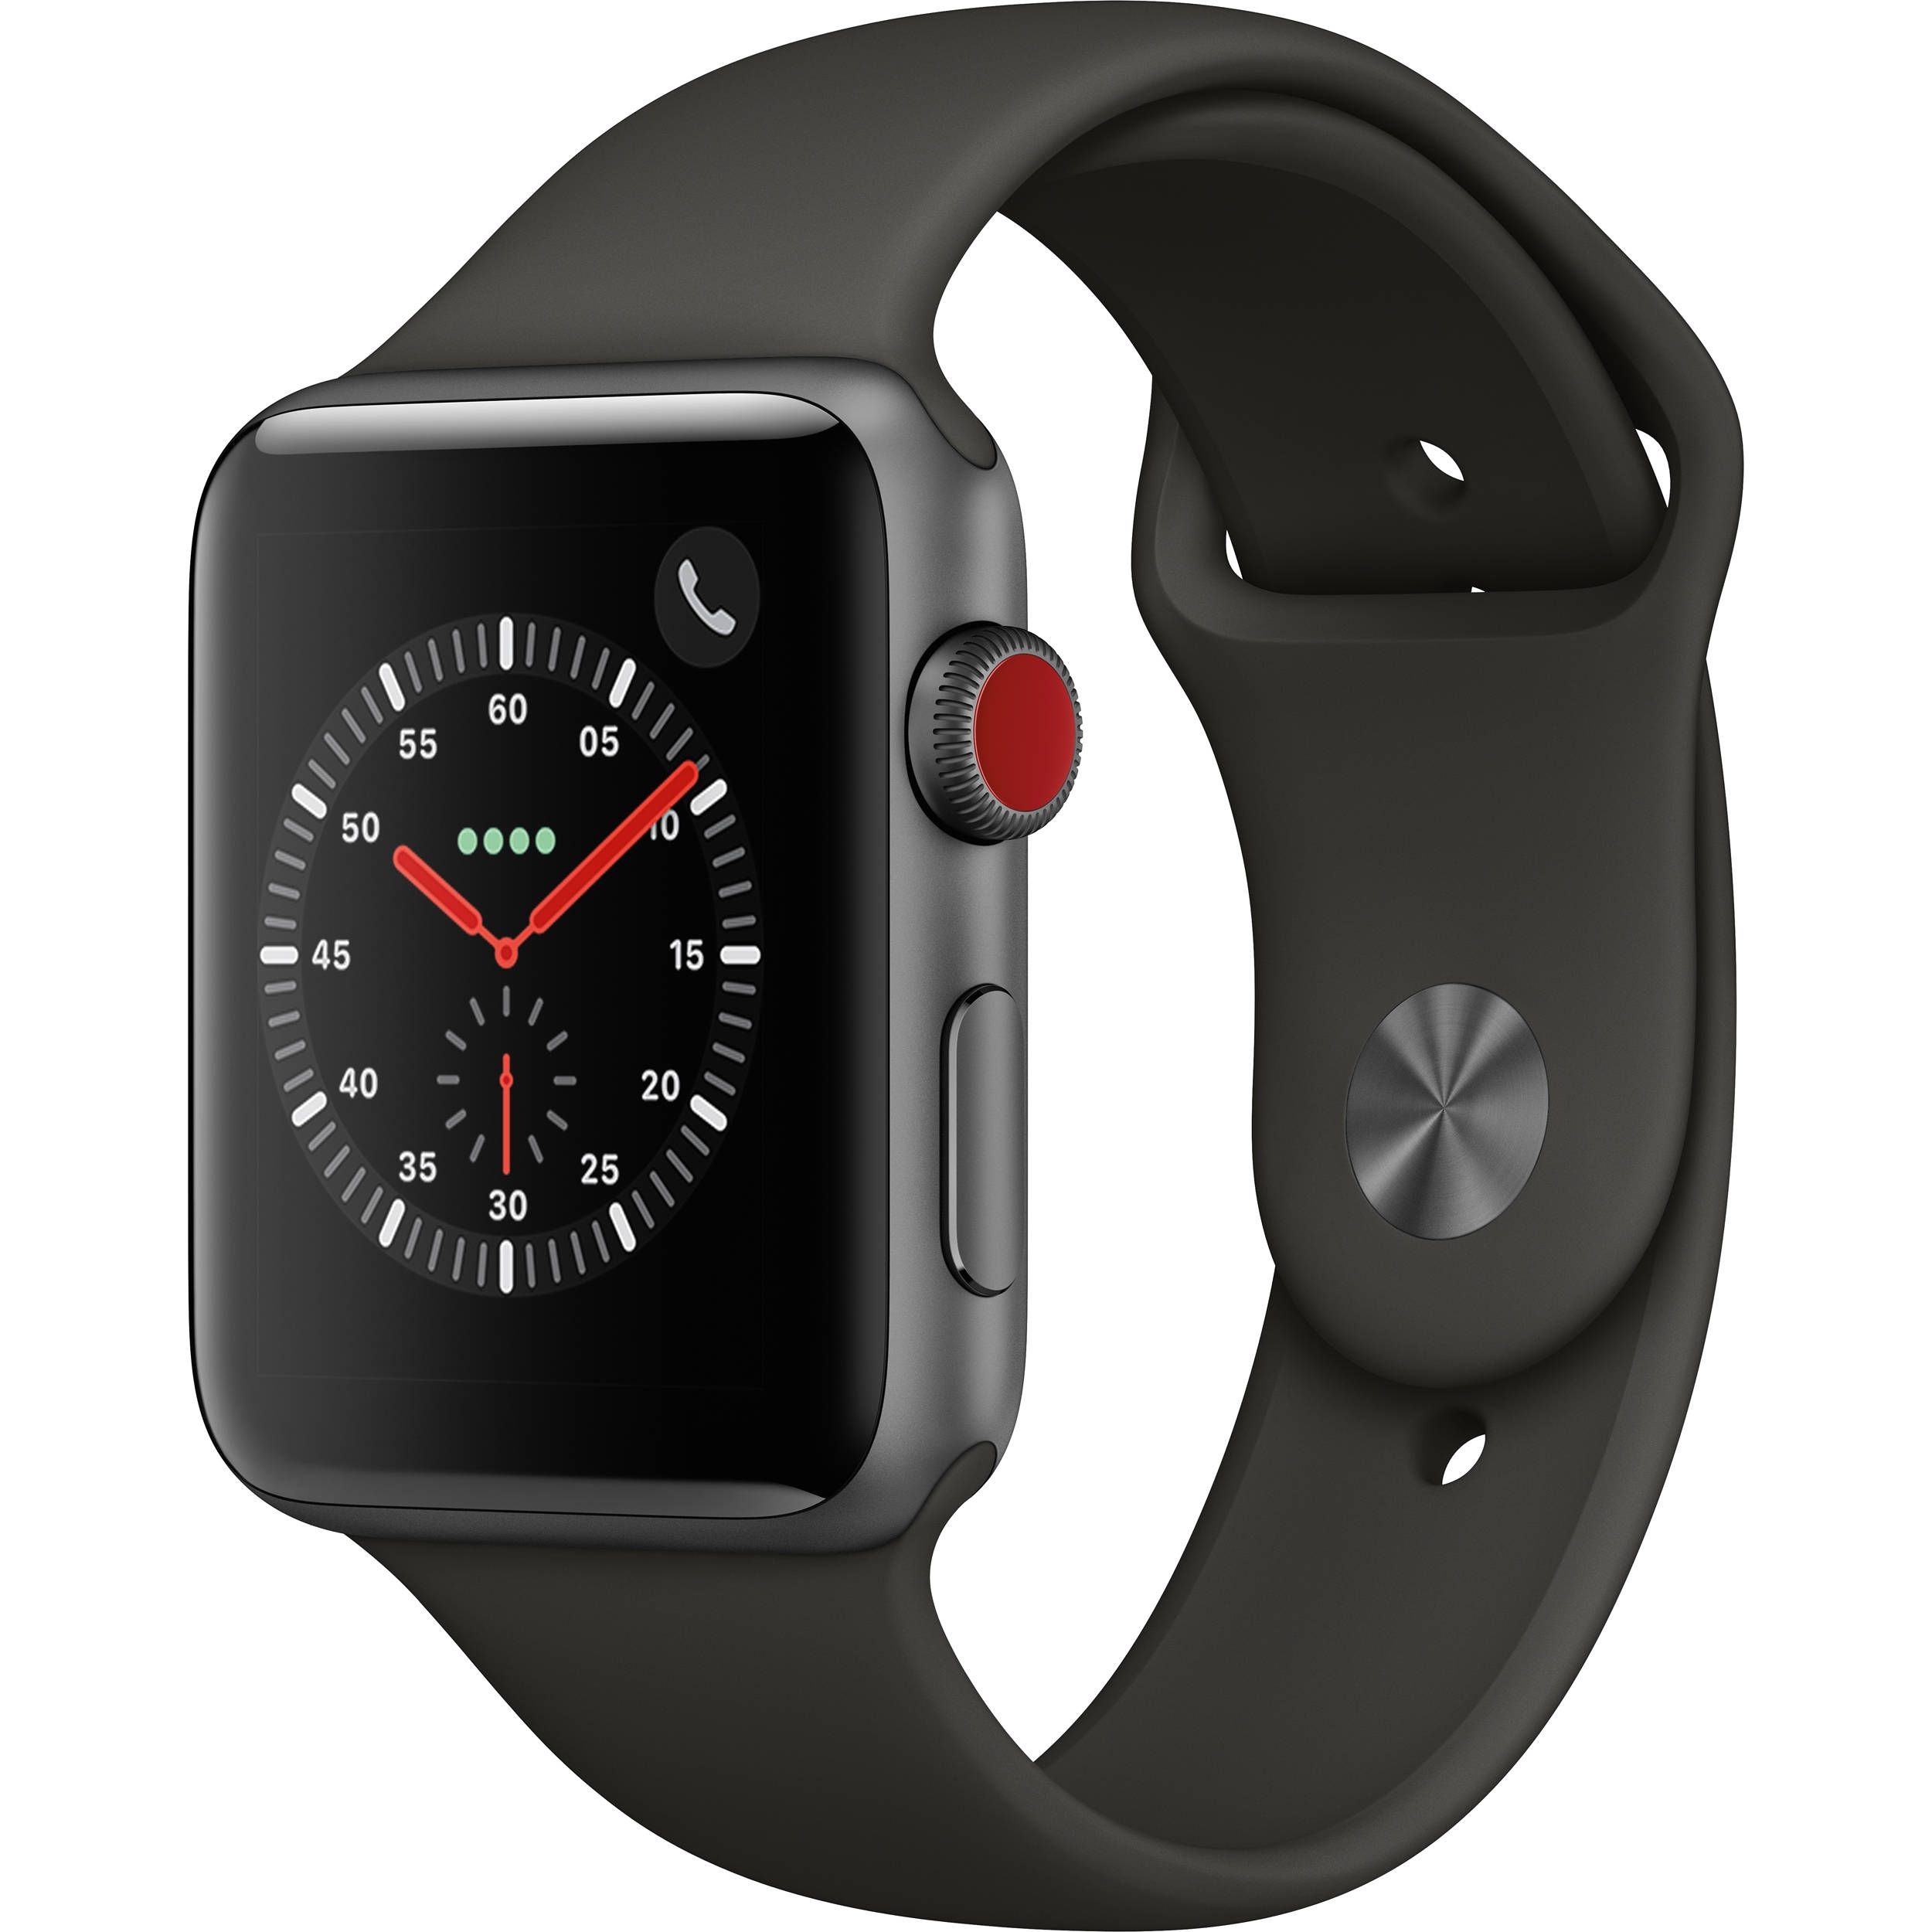 Here's how to get an Apple Watch Series 3 for under £200